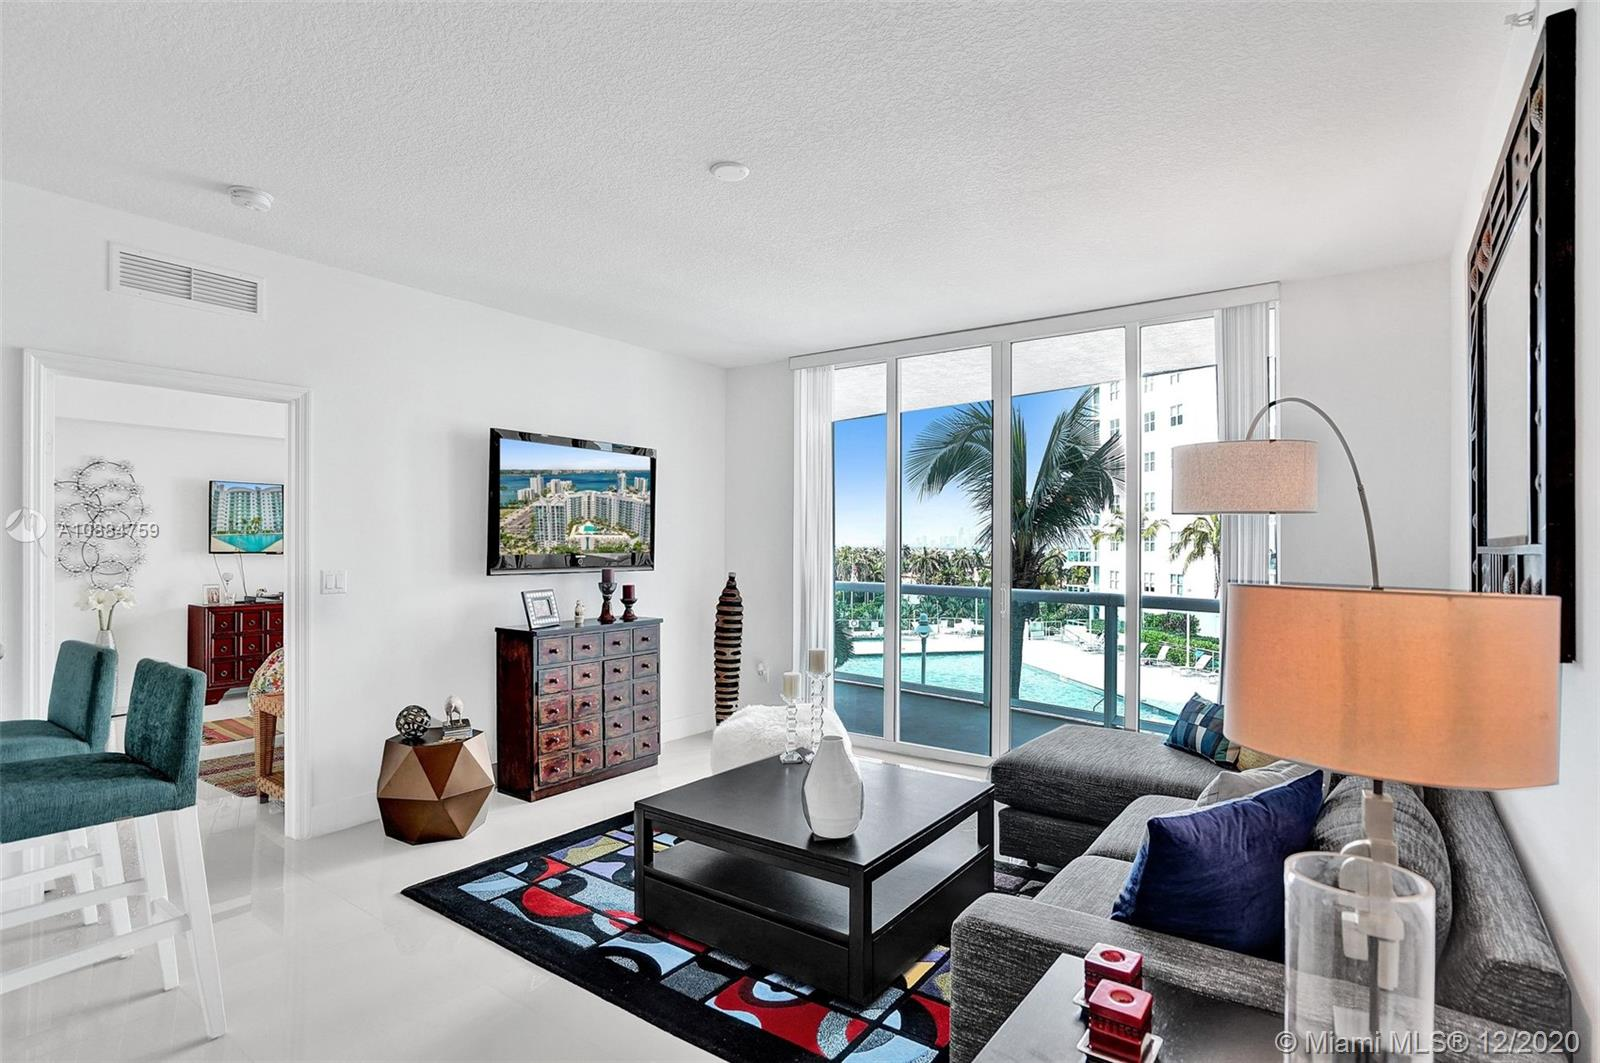 Spectacular unit at 360 condominium. It offers an expansive balcony, tiles floors throughout, a Euro style open kitchen with GE Profile appls. and one assigned parking spaces. This unit is in impeccable ready to move in condition. 360 offers a private marina, 24 hr. security & concierge, free valet parking, fitness center, 2 heated pools and EV charging stations.